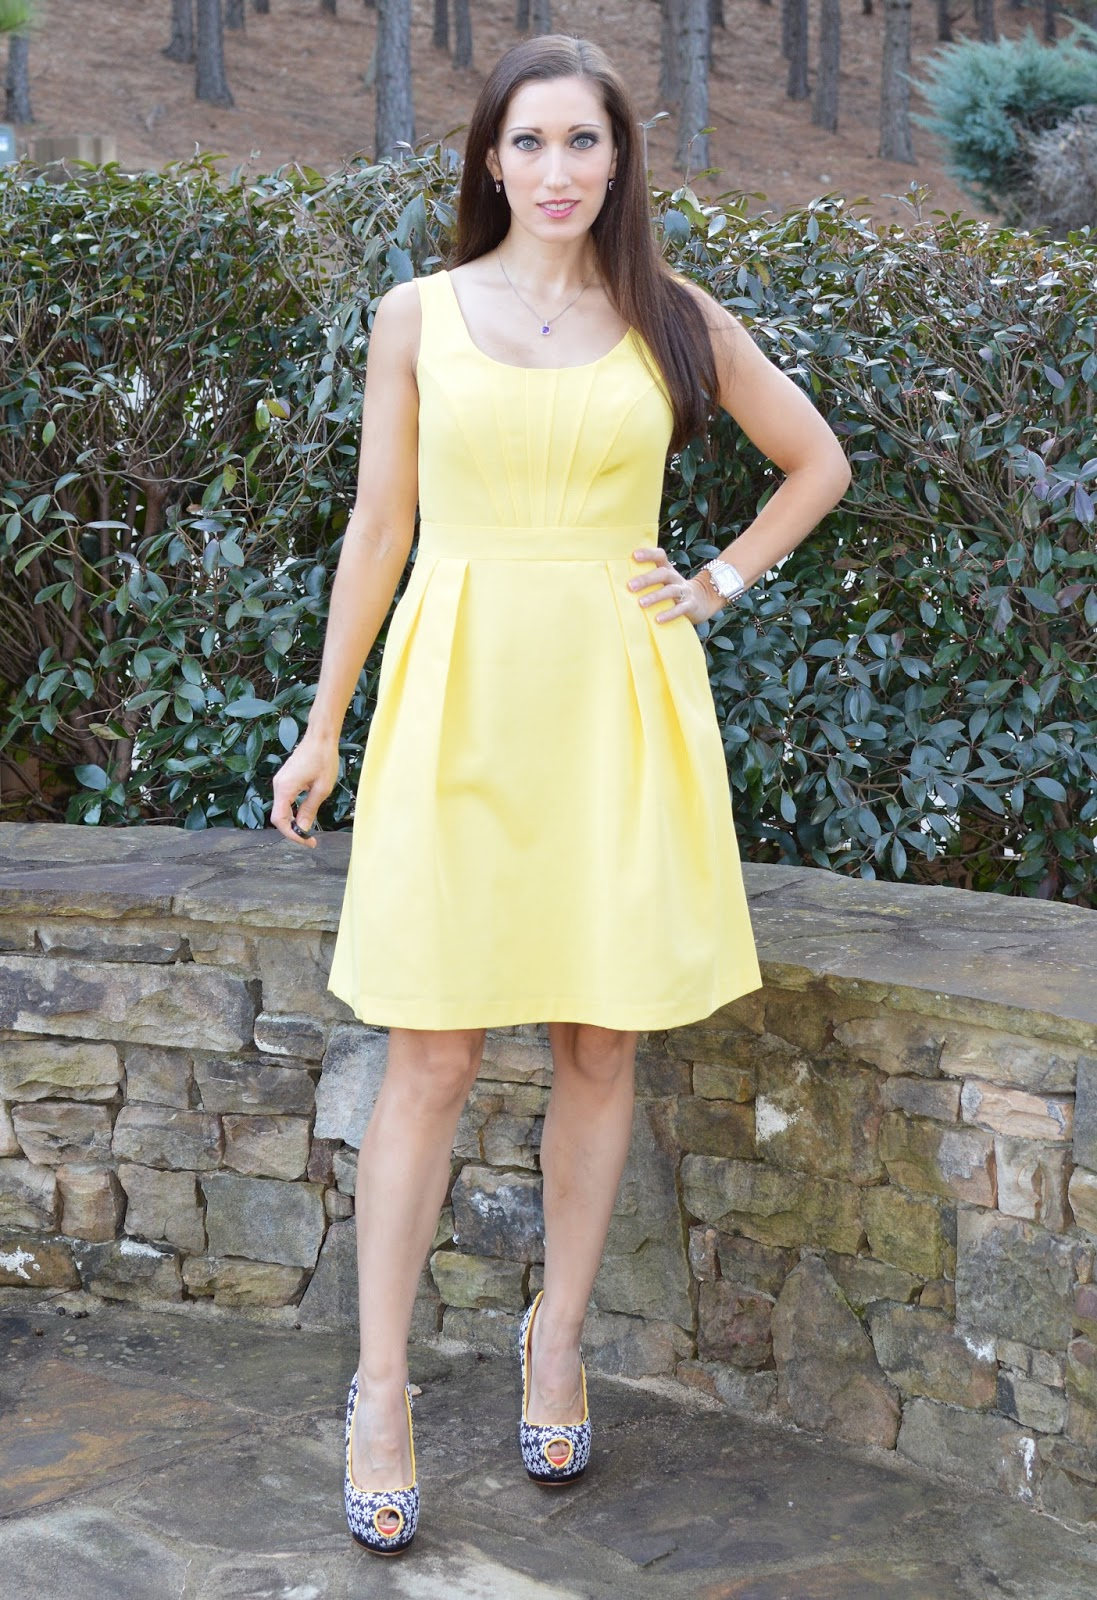 yellow dress very nice